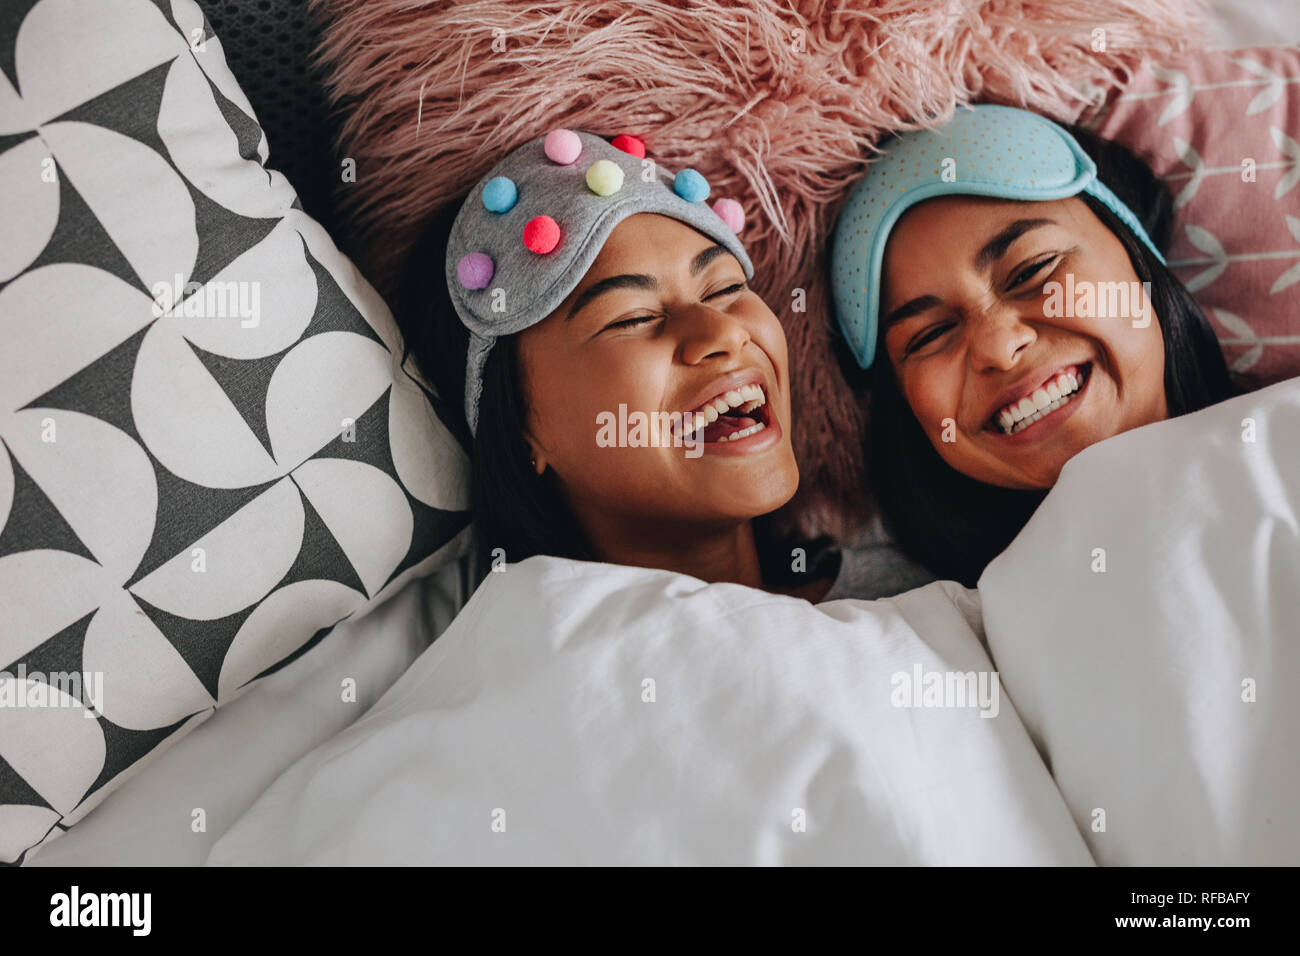 Top view of two girls laughing with eyes closed lying on bed having a sleepover. Girls with fancy sleep masks over the head laughing and having fun du - Stock Image